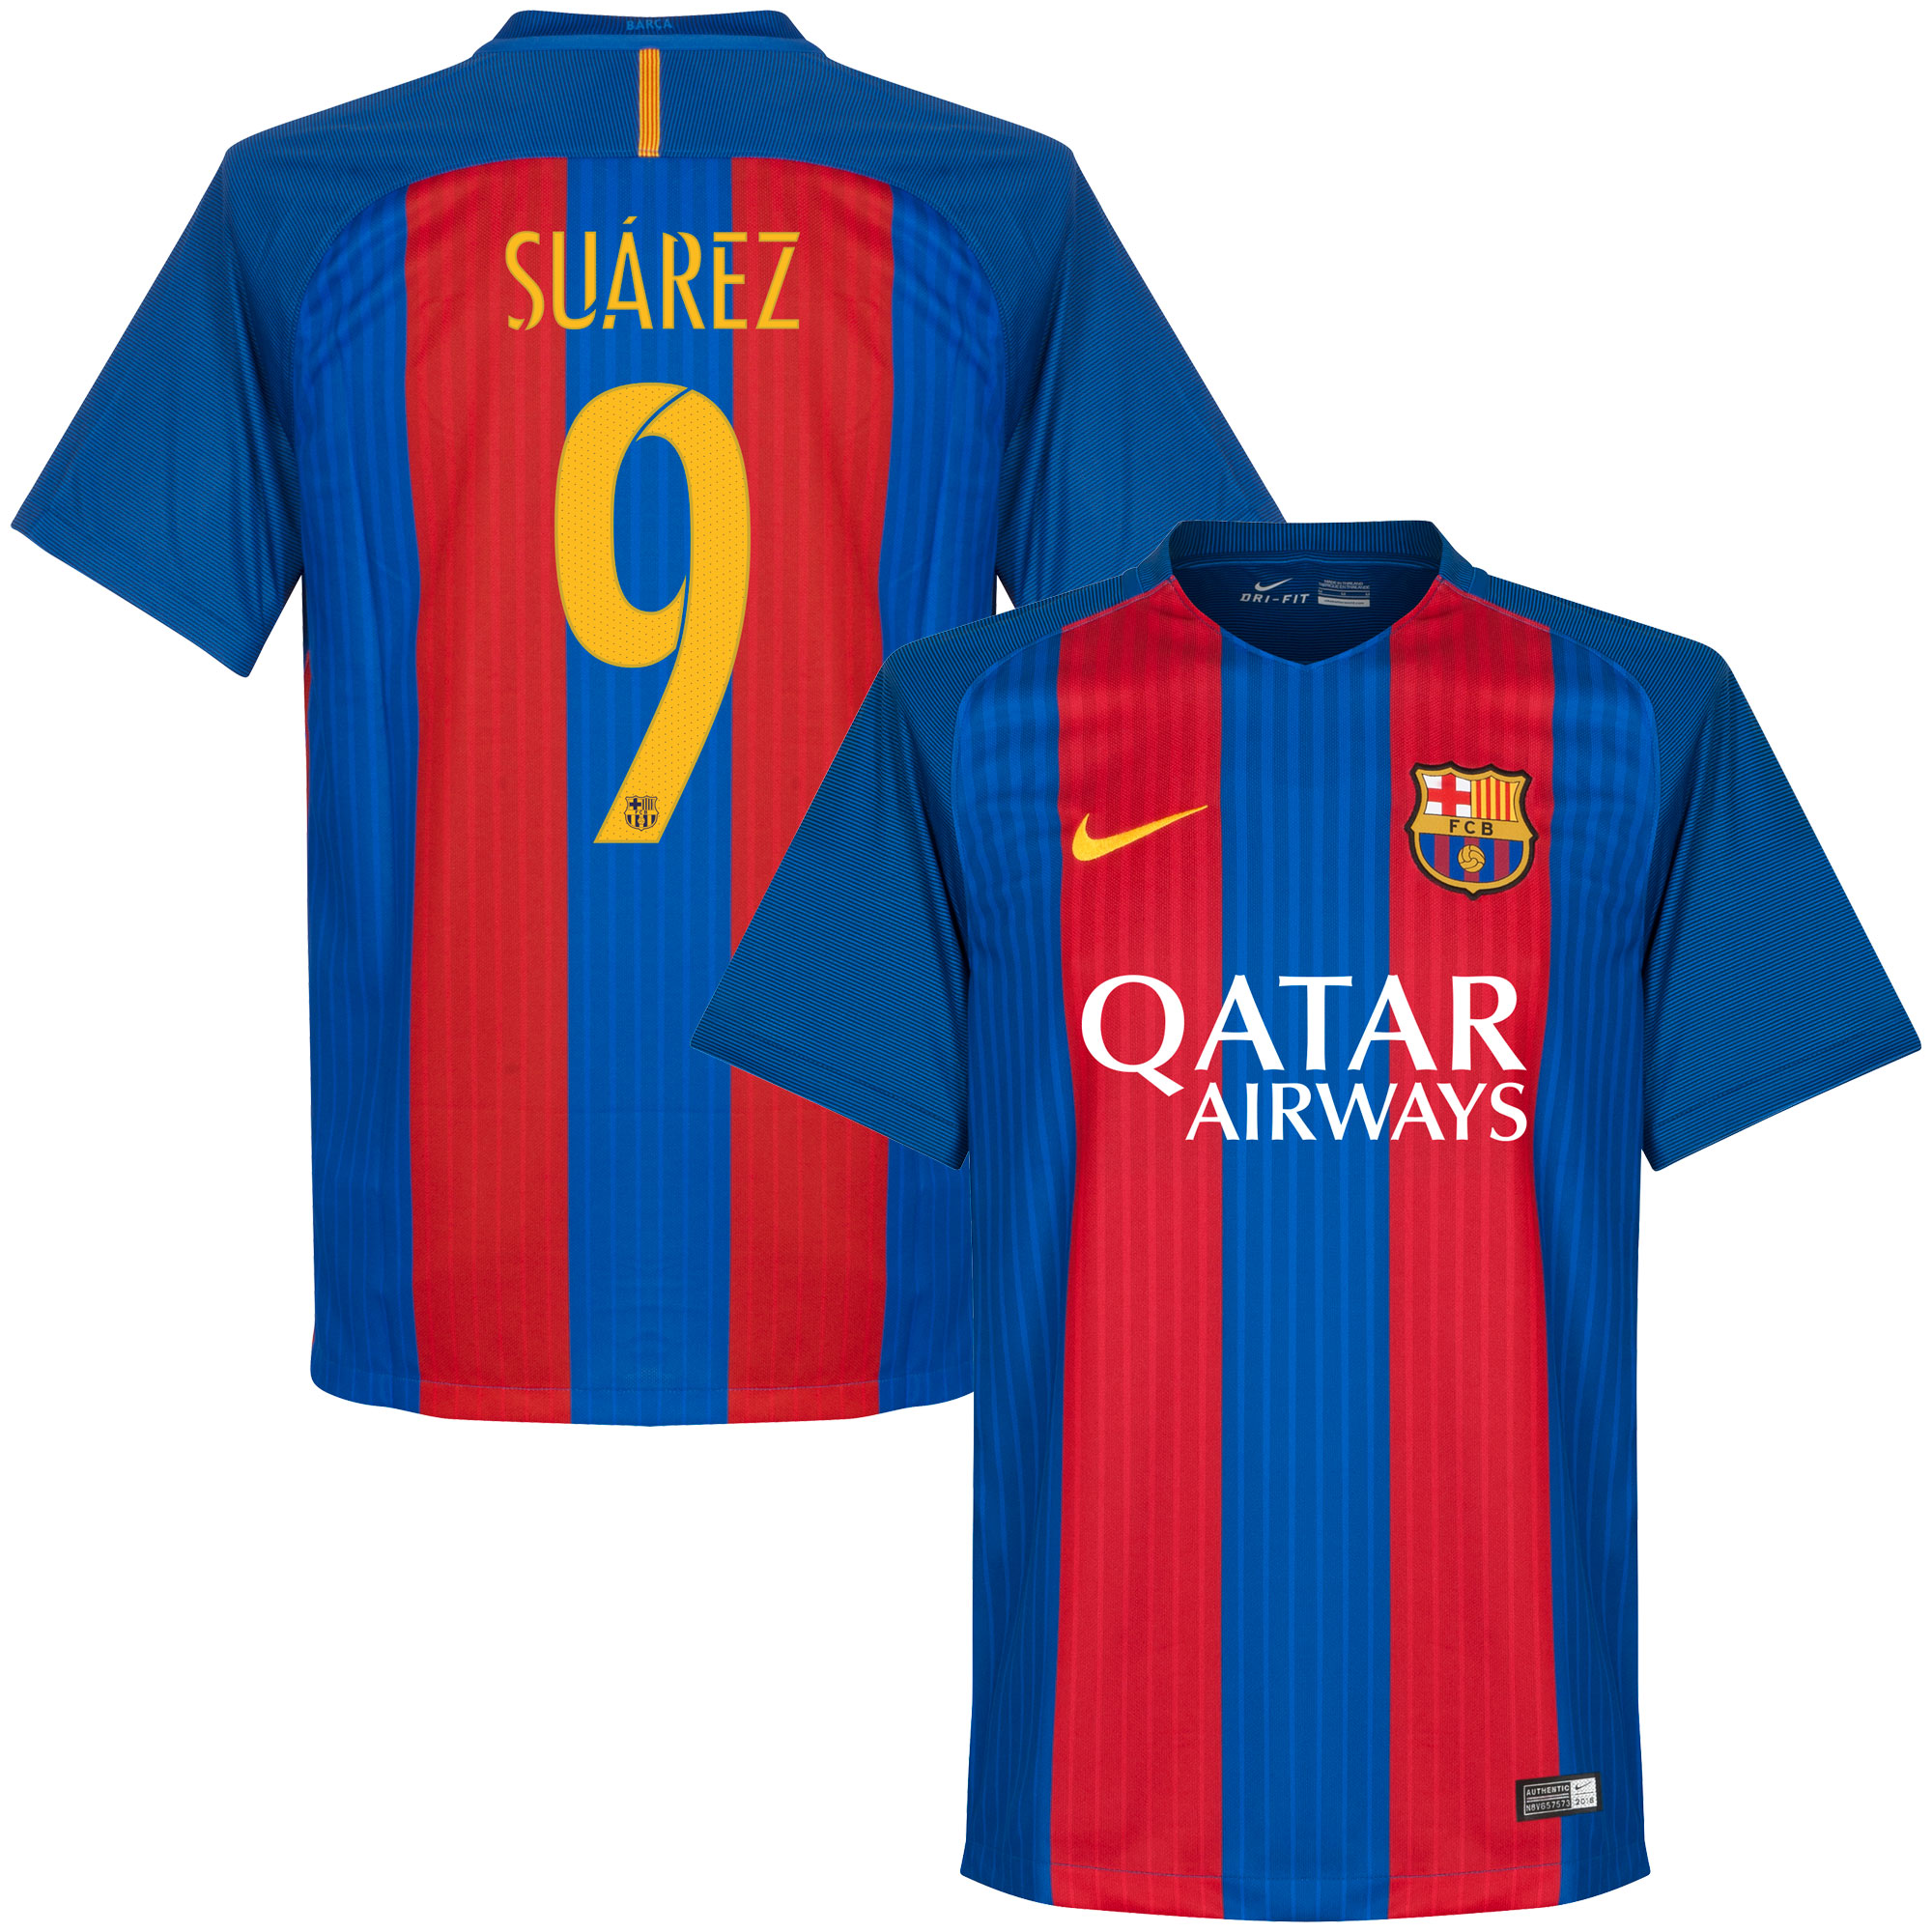 Barcelona Home Suárez European Jersey 2016 / 2017 (Official Player Printing) - M